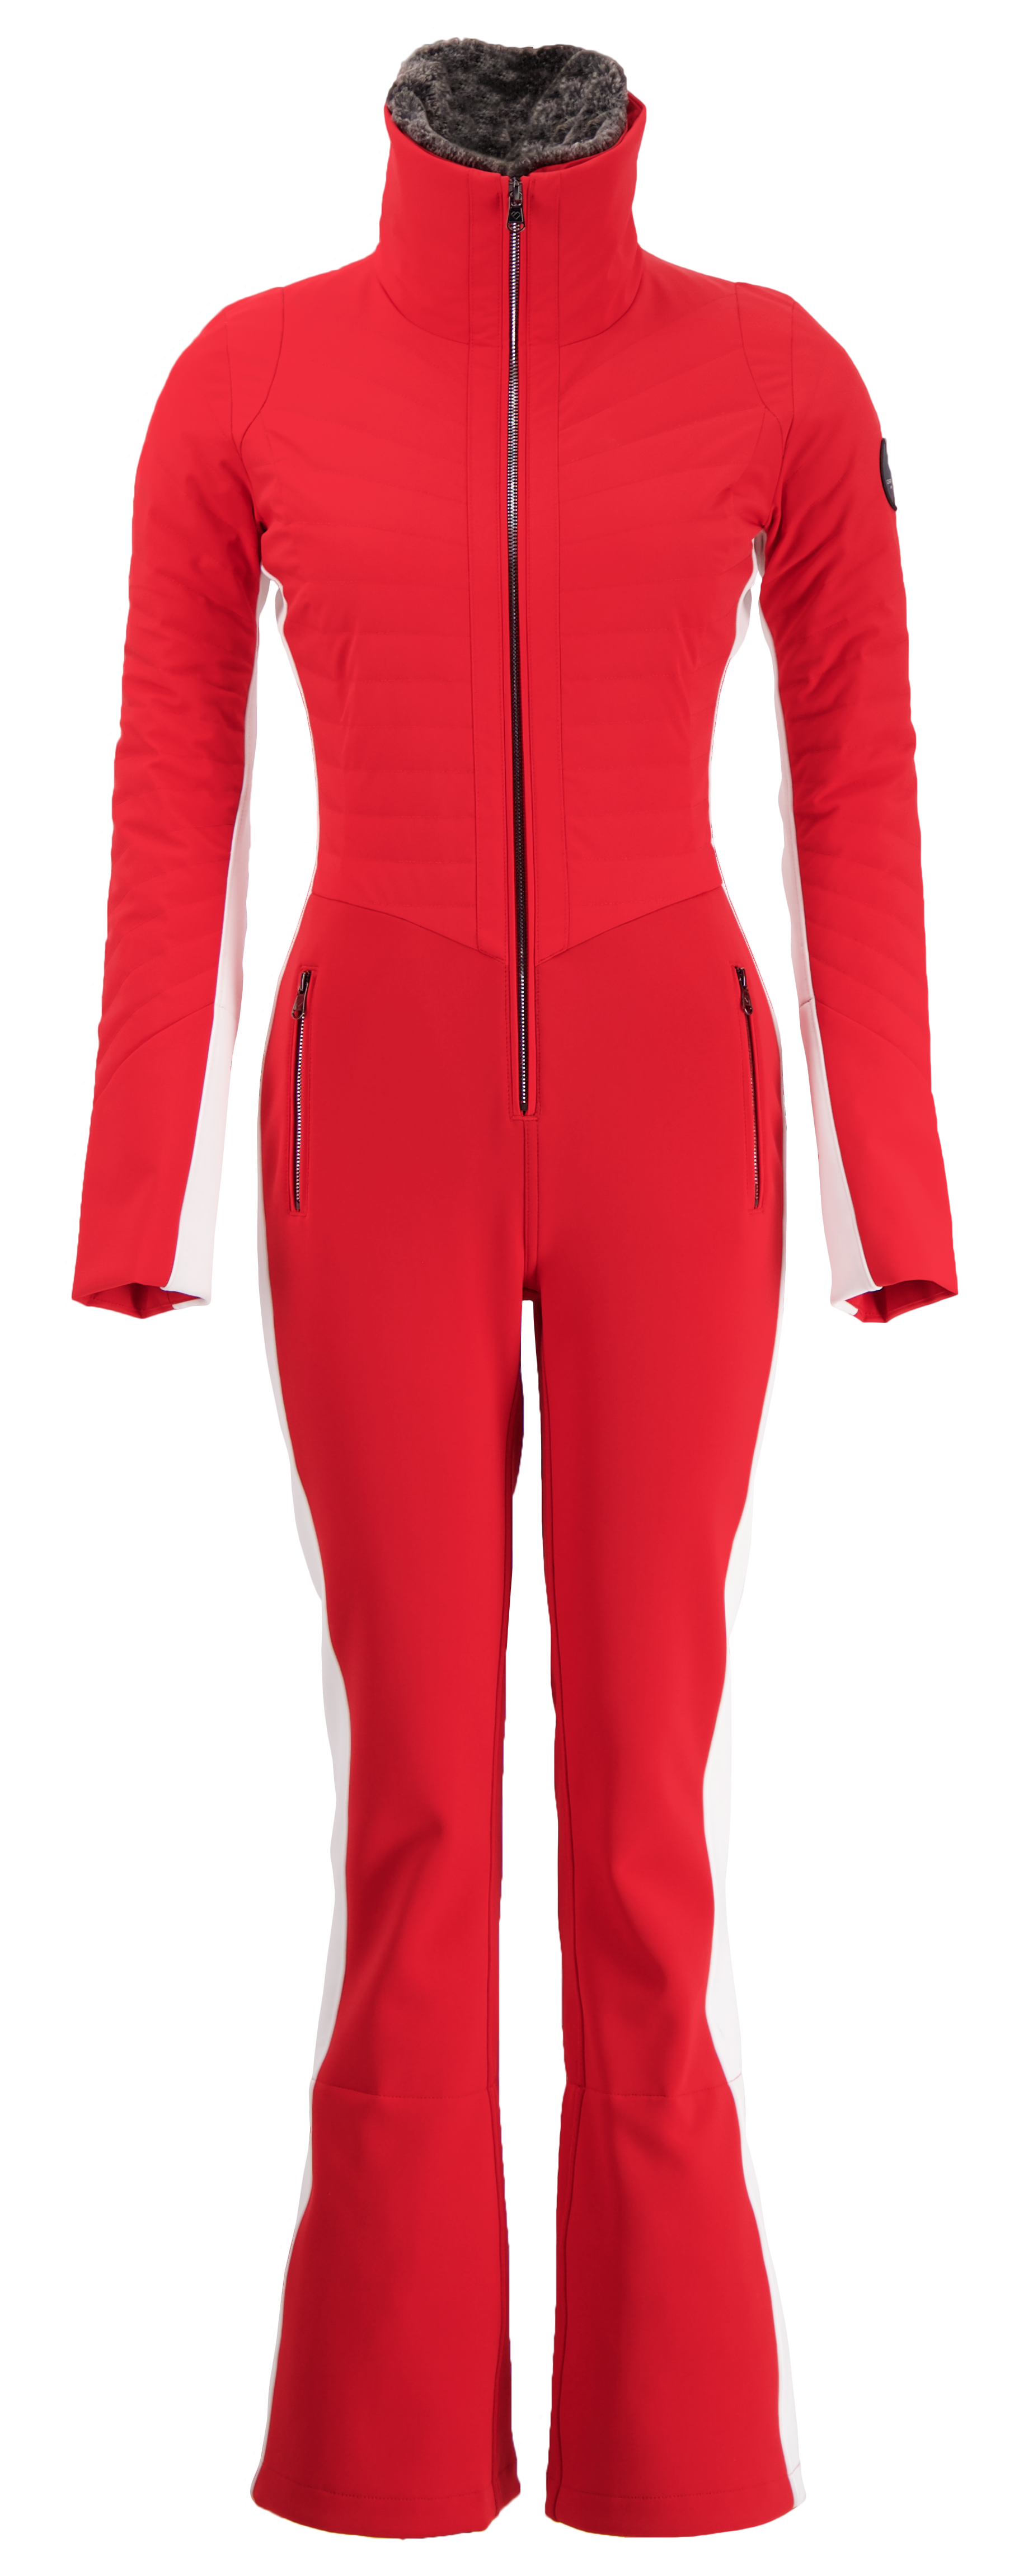 resort guide 2018 sugarloaf overall